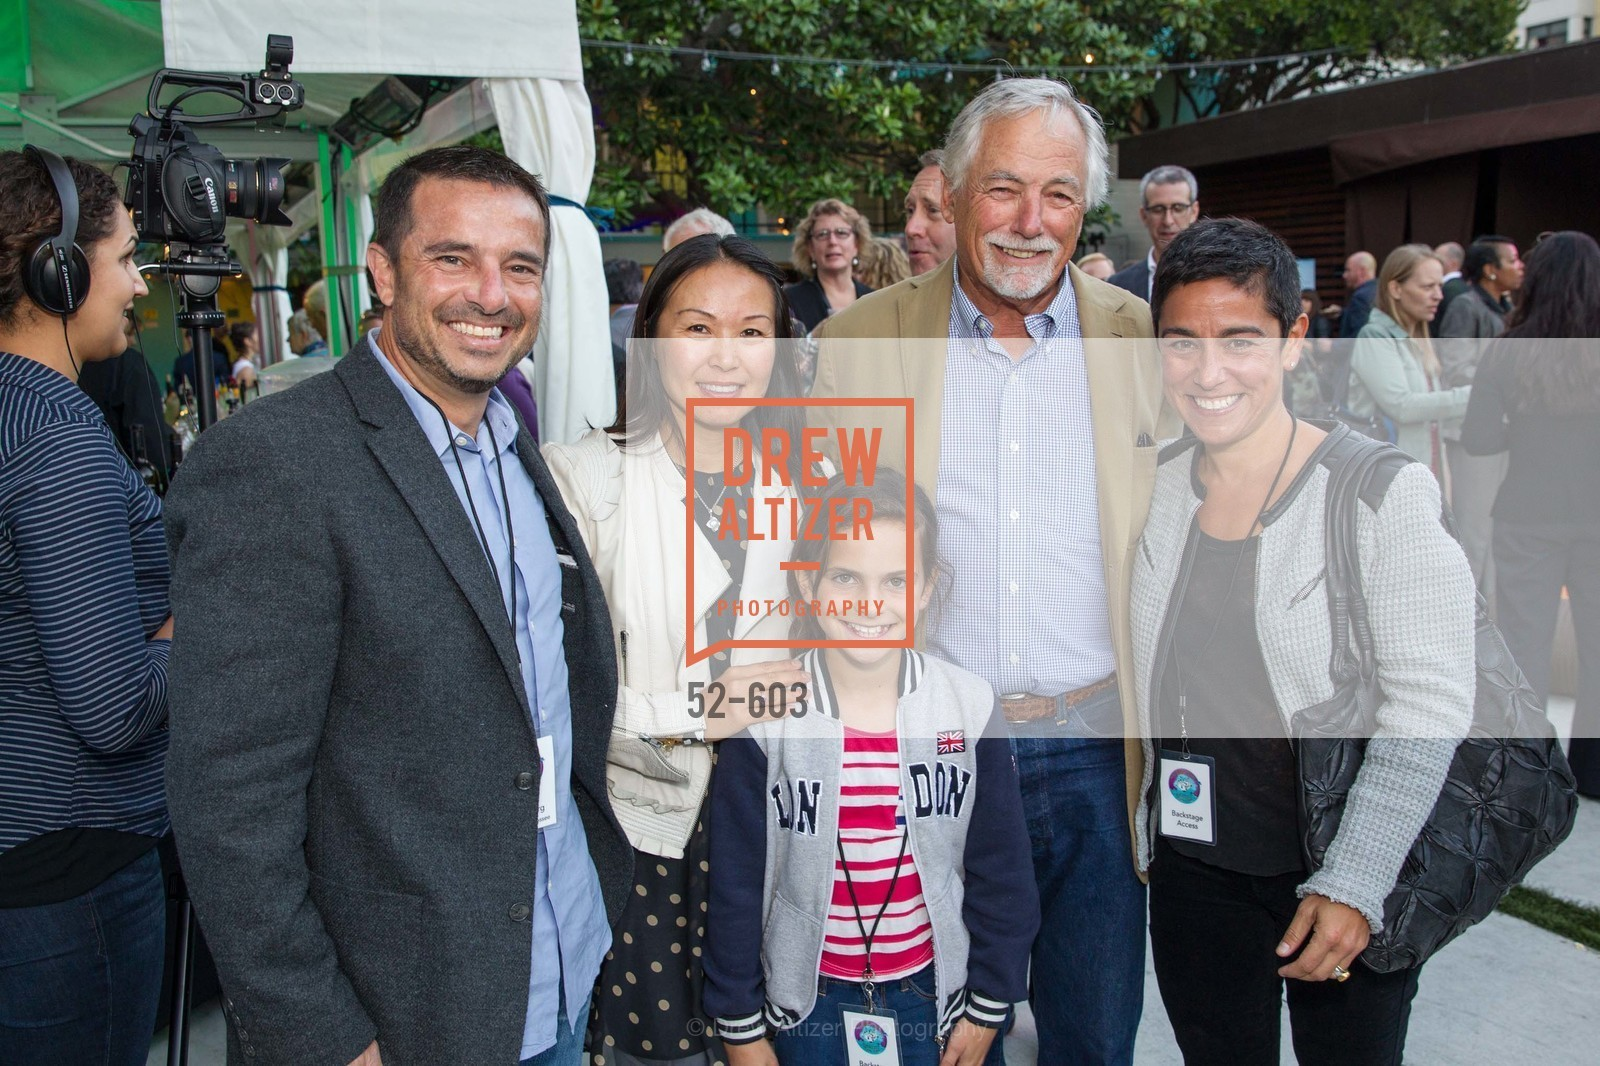 Phil Ginsburg, Maggie Wei, Sarah Ginsburg, Mark Buell, Emily Ginsbury, 22nd Annual TNDC CELEBRITY POOL TOSS, US, October 9th, 2014,Drew Altizer, Drew Altizer Photography, full-service agency, private events, San Francisco photographer, photographer california